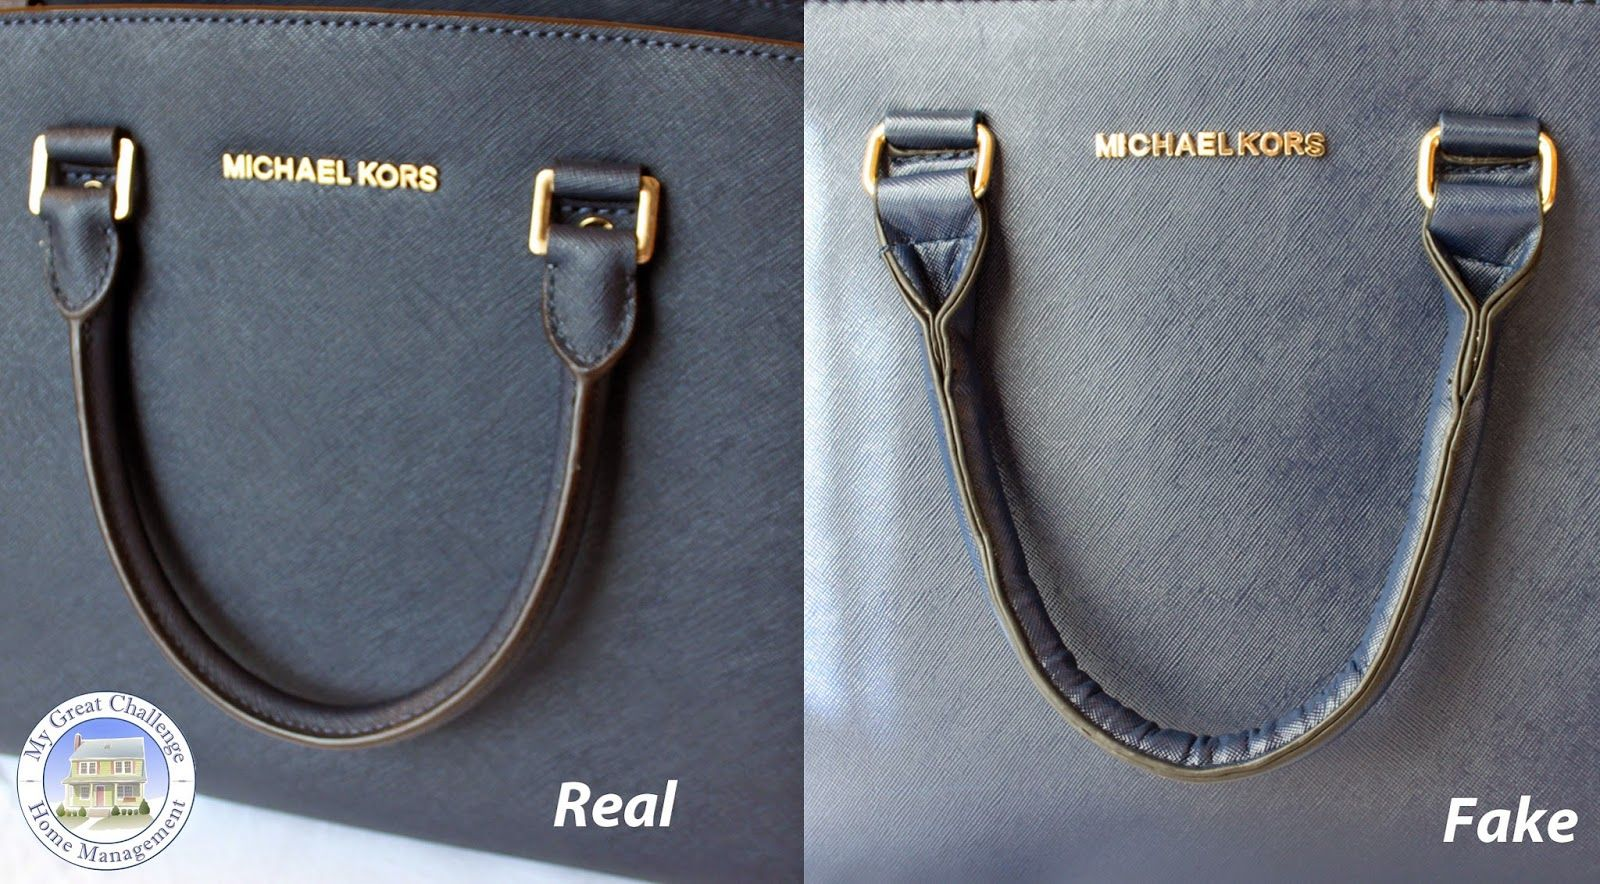 c0c0ea9ba2 Michael Kors Selma - Fake VS. Real Comparison